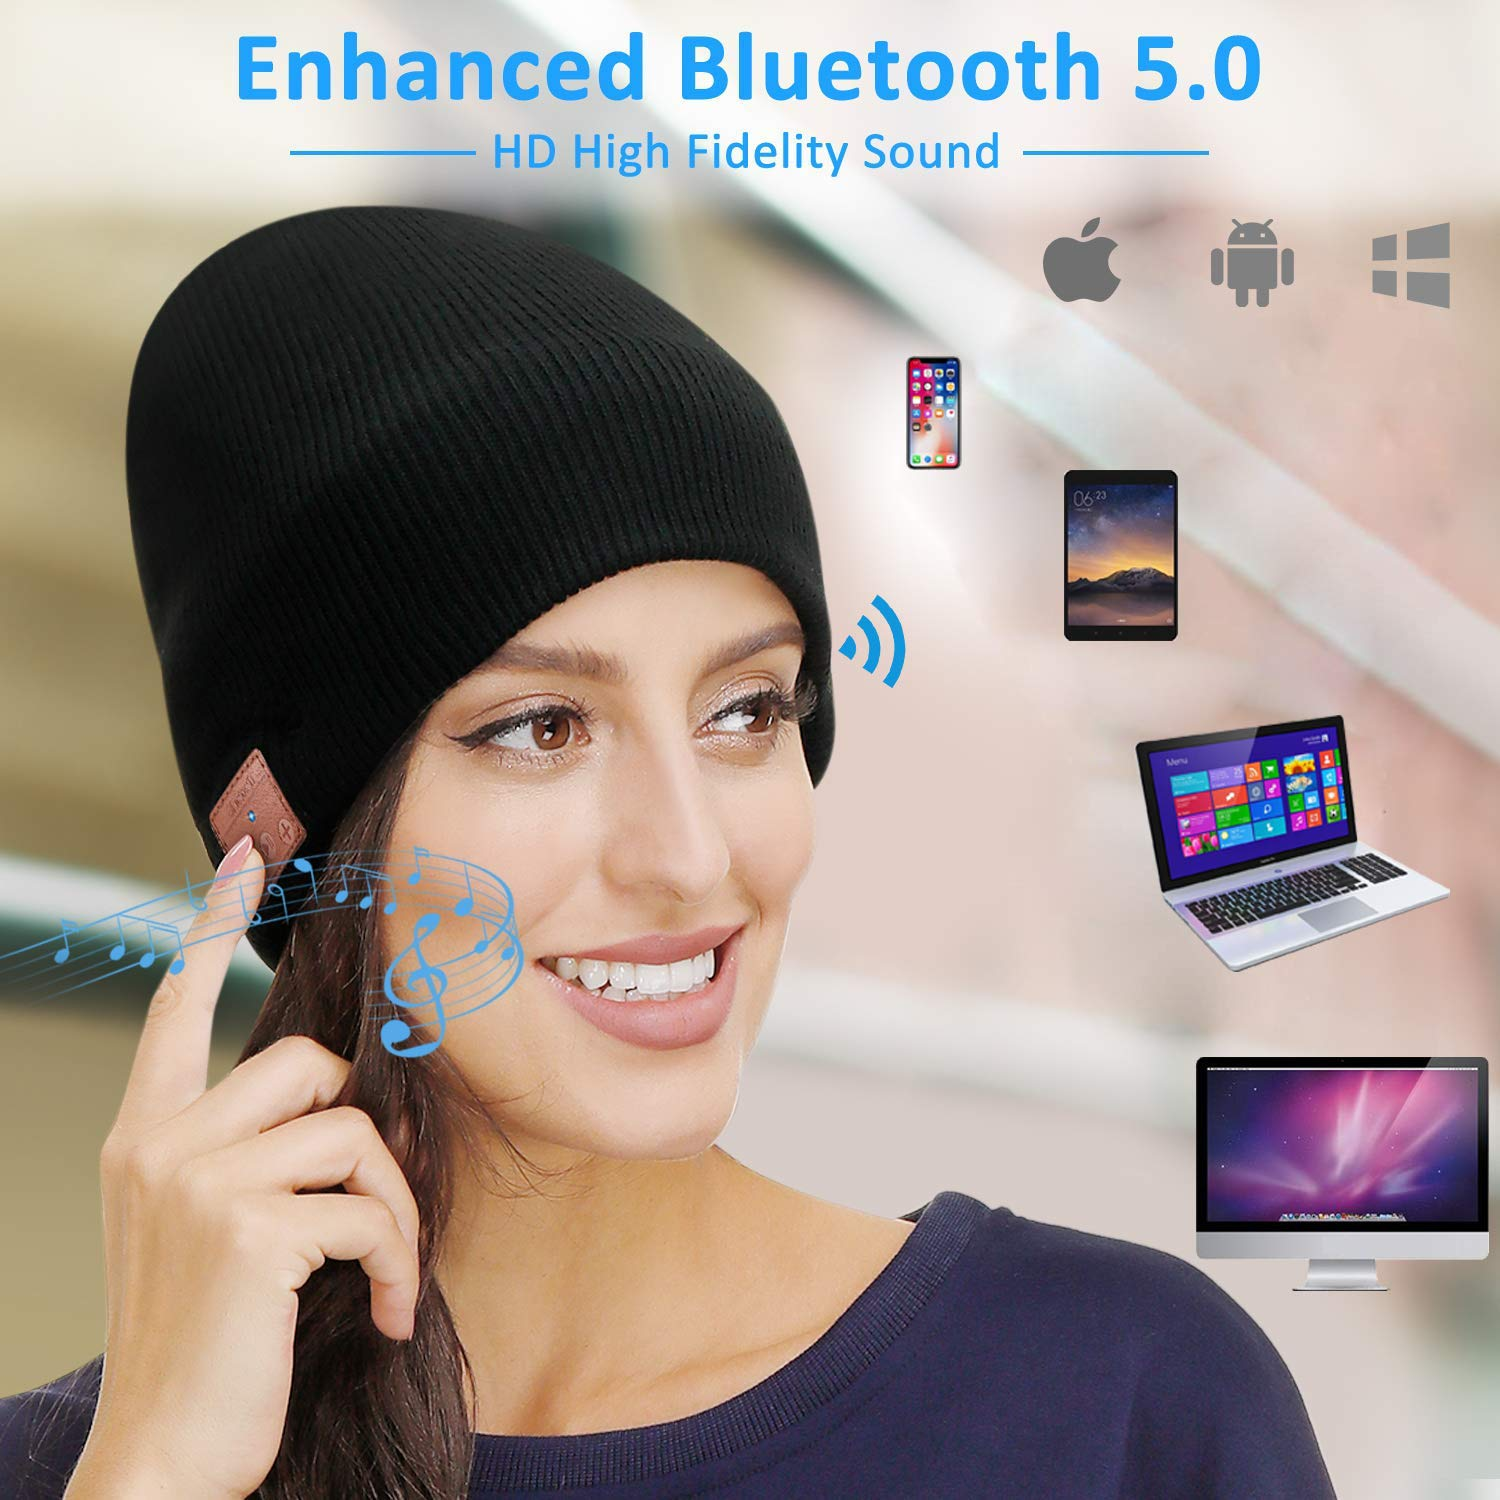 Bluetooth Beanie, Women Mens Gifts,Bluetooth Hat, Bluetooth Music Hat with Bluetooth 5.0, Built-in Mic, Fit for Outdoor Sports,Washable,Fashion Gifts for Men Women,Teenagers,Christmas Thanksgiving Day